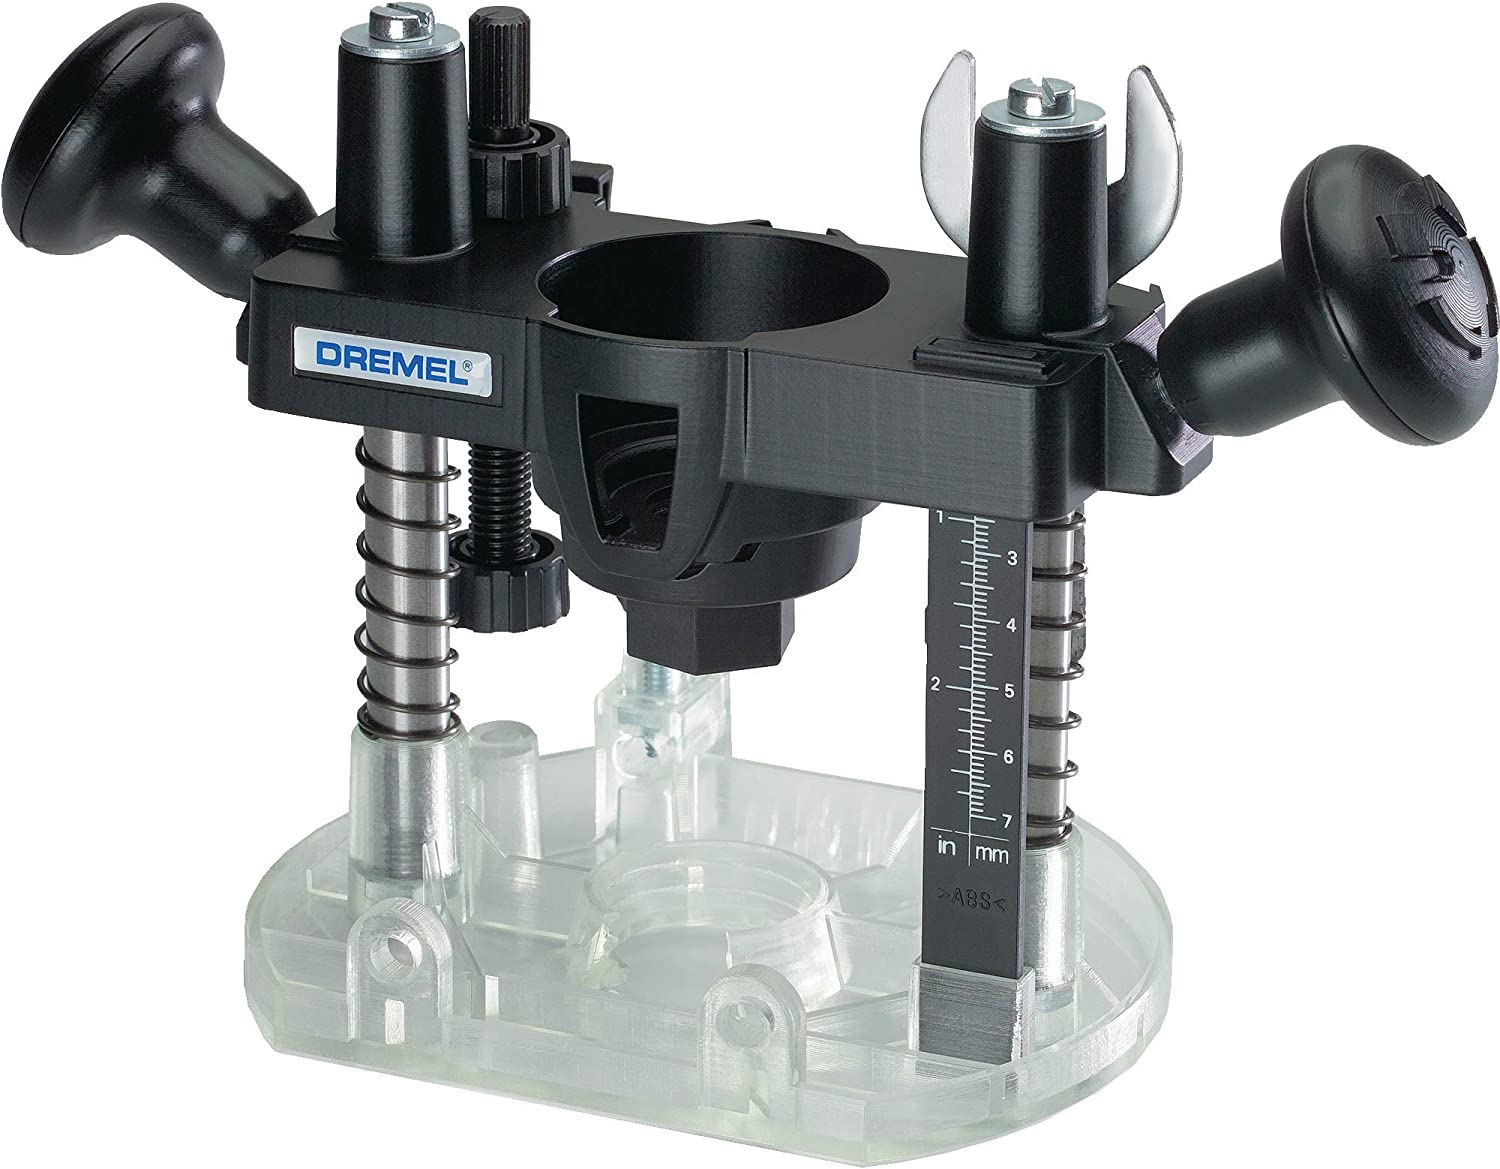 Model 5000335-01 Dremel 335-01 Plunge Router Attachment Tools /& Hardware Store